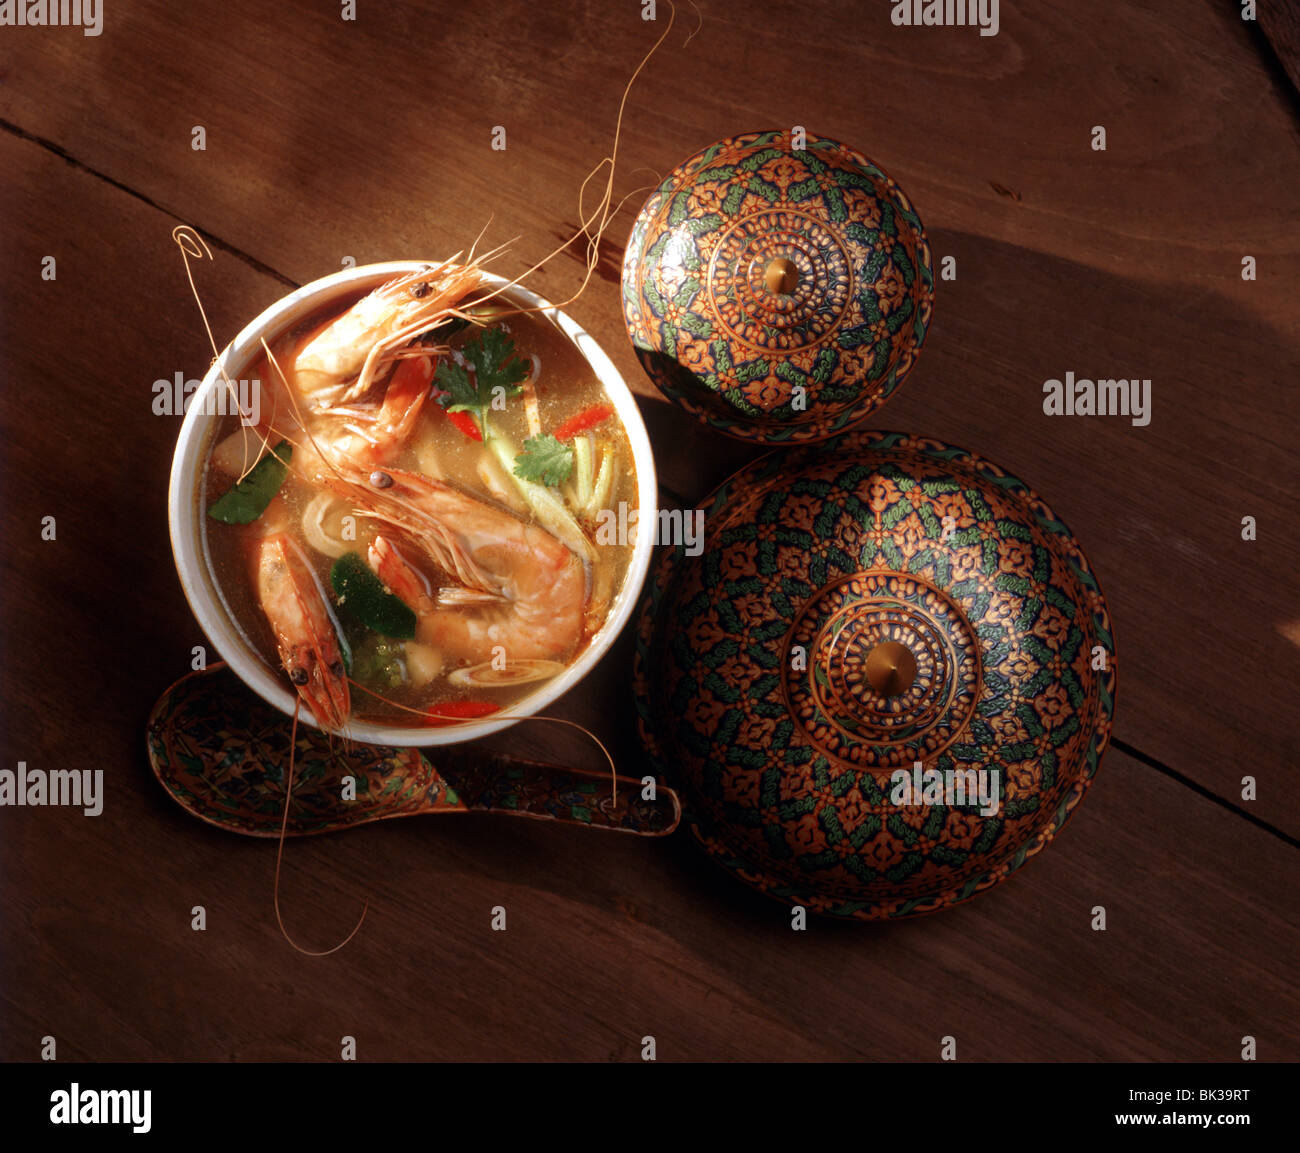 Tom Yum Goong, spicy soup with lemongrass and galangal, Thailand, Southeast Asia, Asia - Stock Image